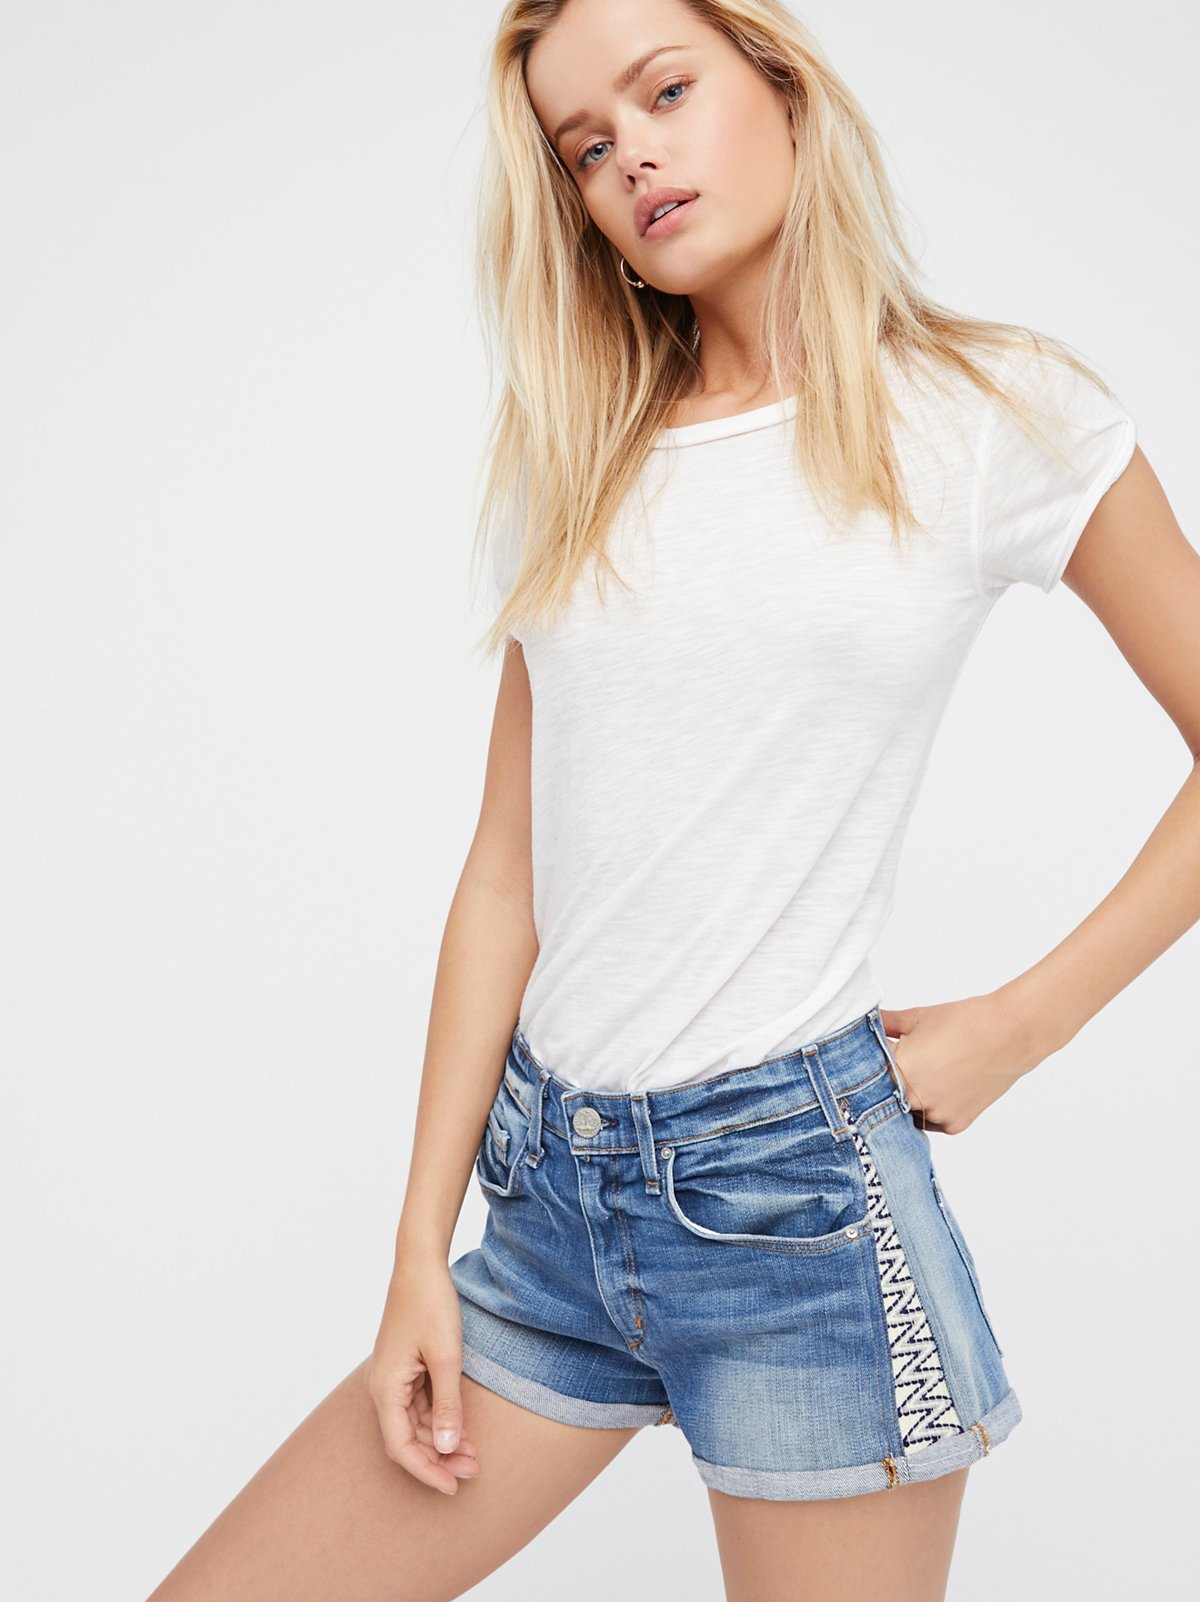 Daiquiri Embroidered Short